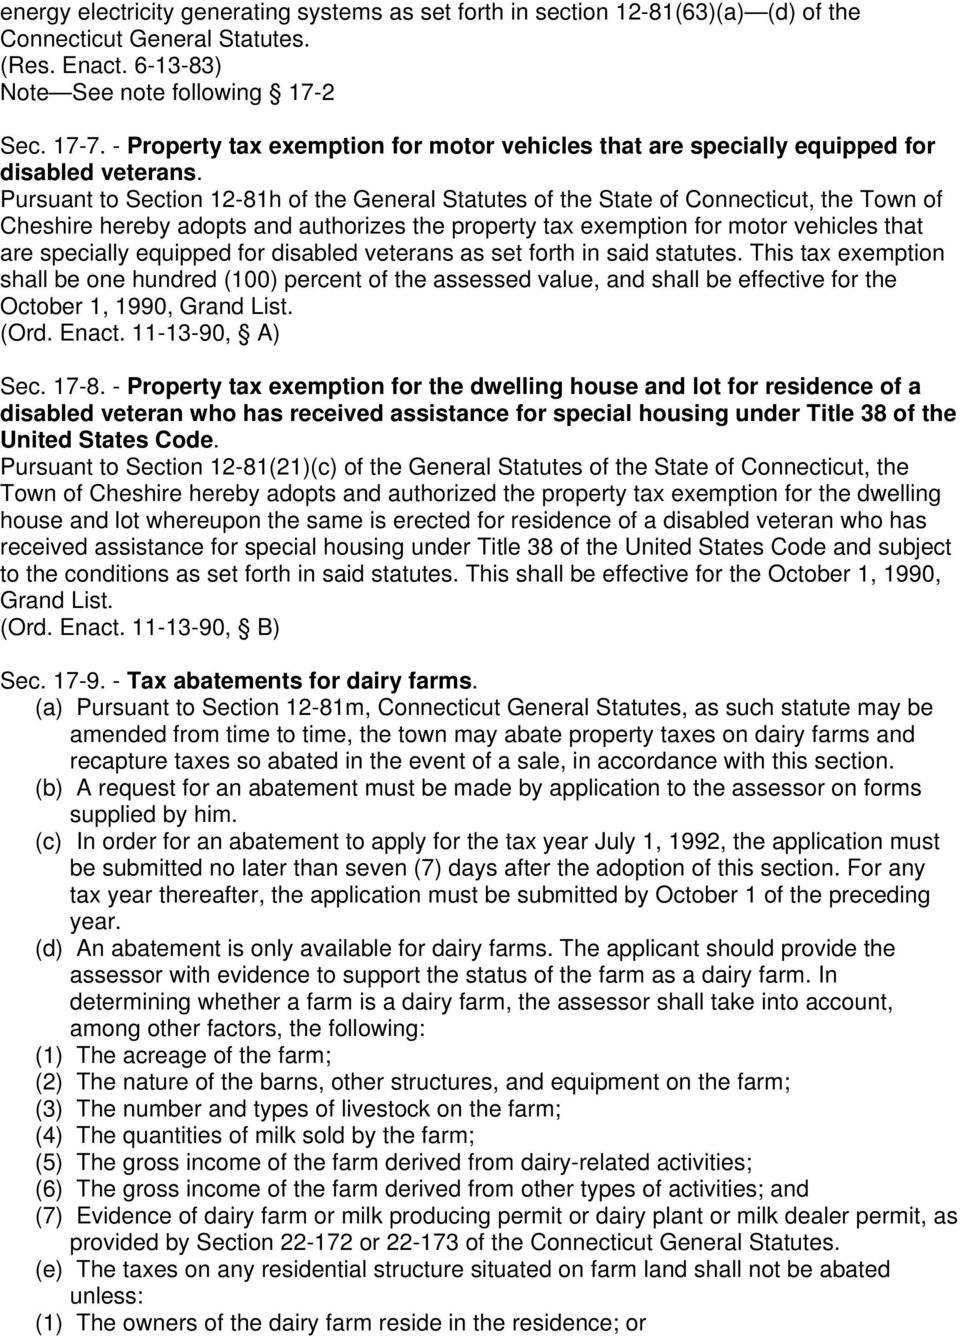 Pursuant to Section 12-81h of the General Statutes of the State of Connecticut, the Town of Cheshire hereby adopts and authorizes the property tax exemption for motor vehicles that are specially